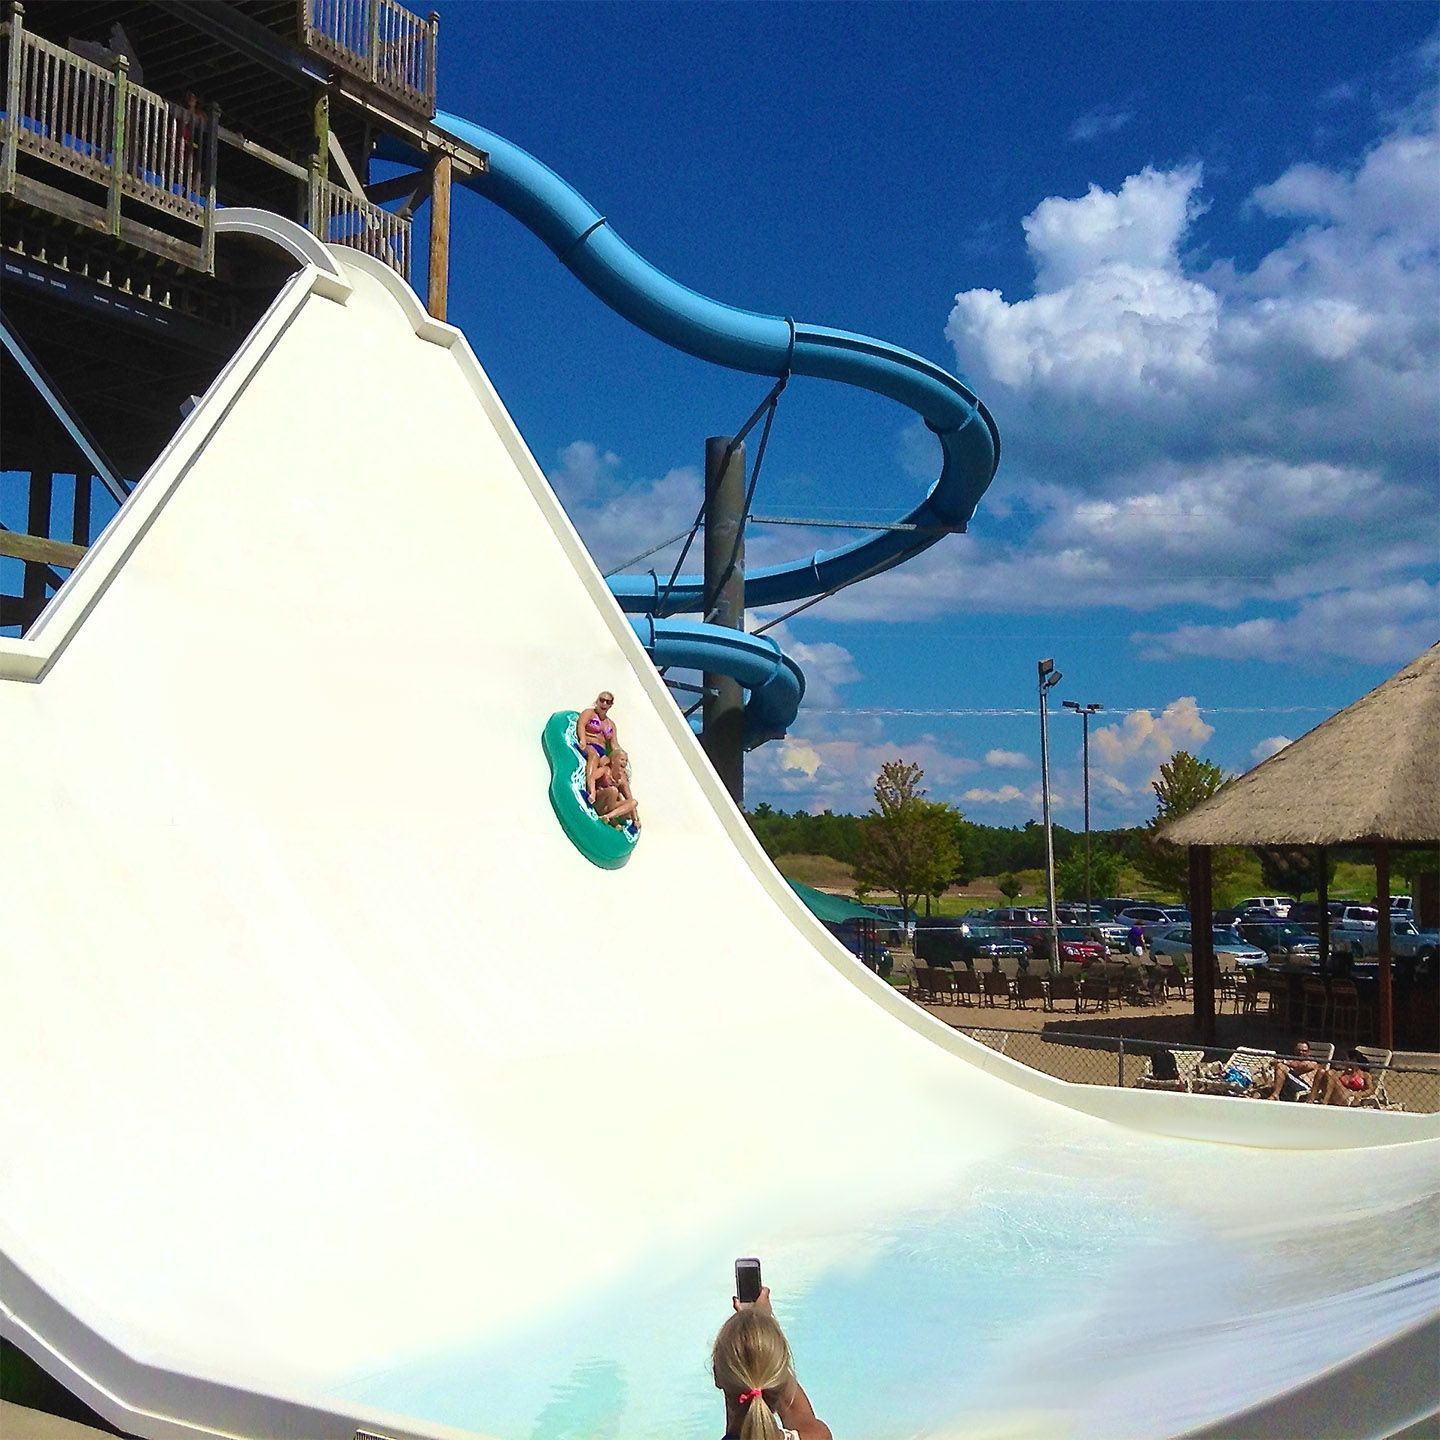 Pin by Chula Vista Resort on Amenities | Wisconsin dells